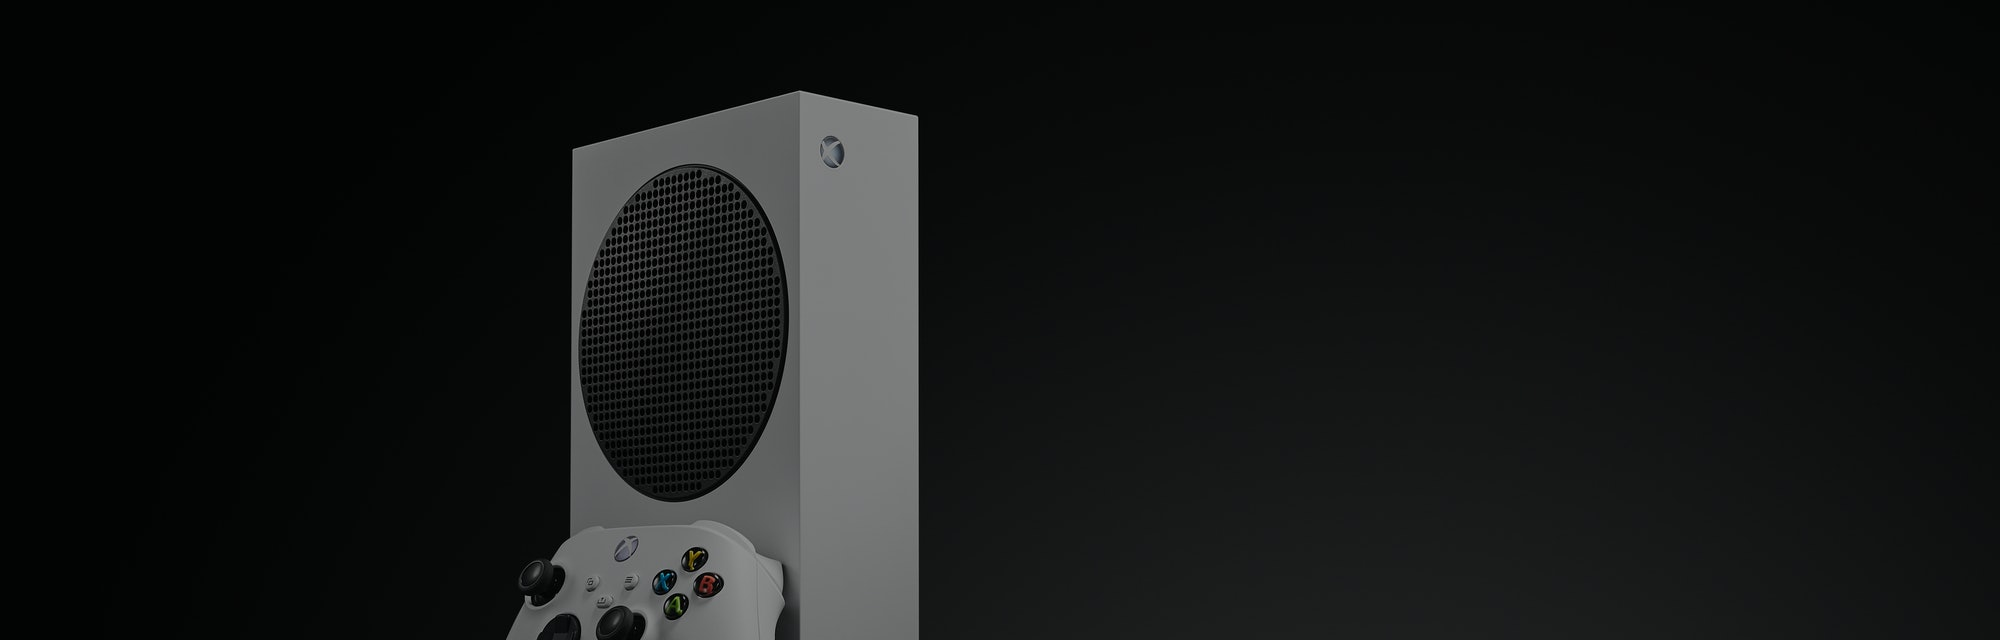 Microsoft's Xbox Series S pictured on a black background.